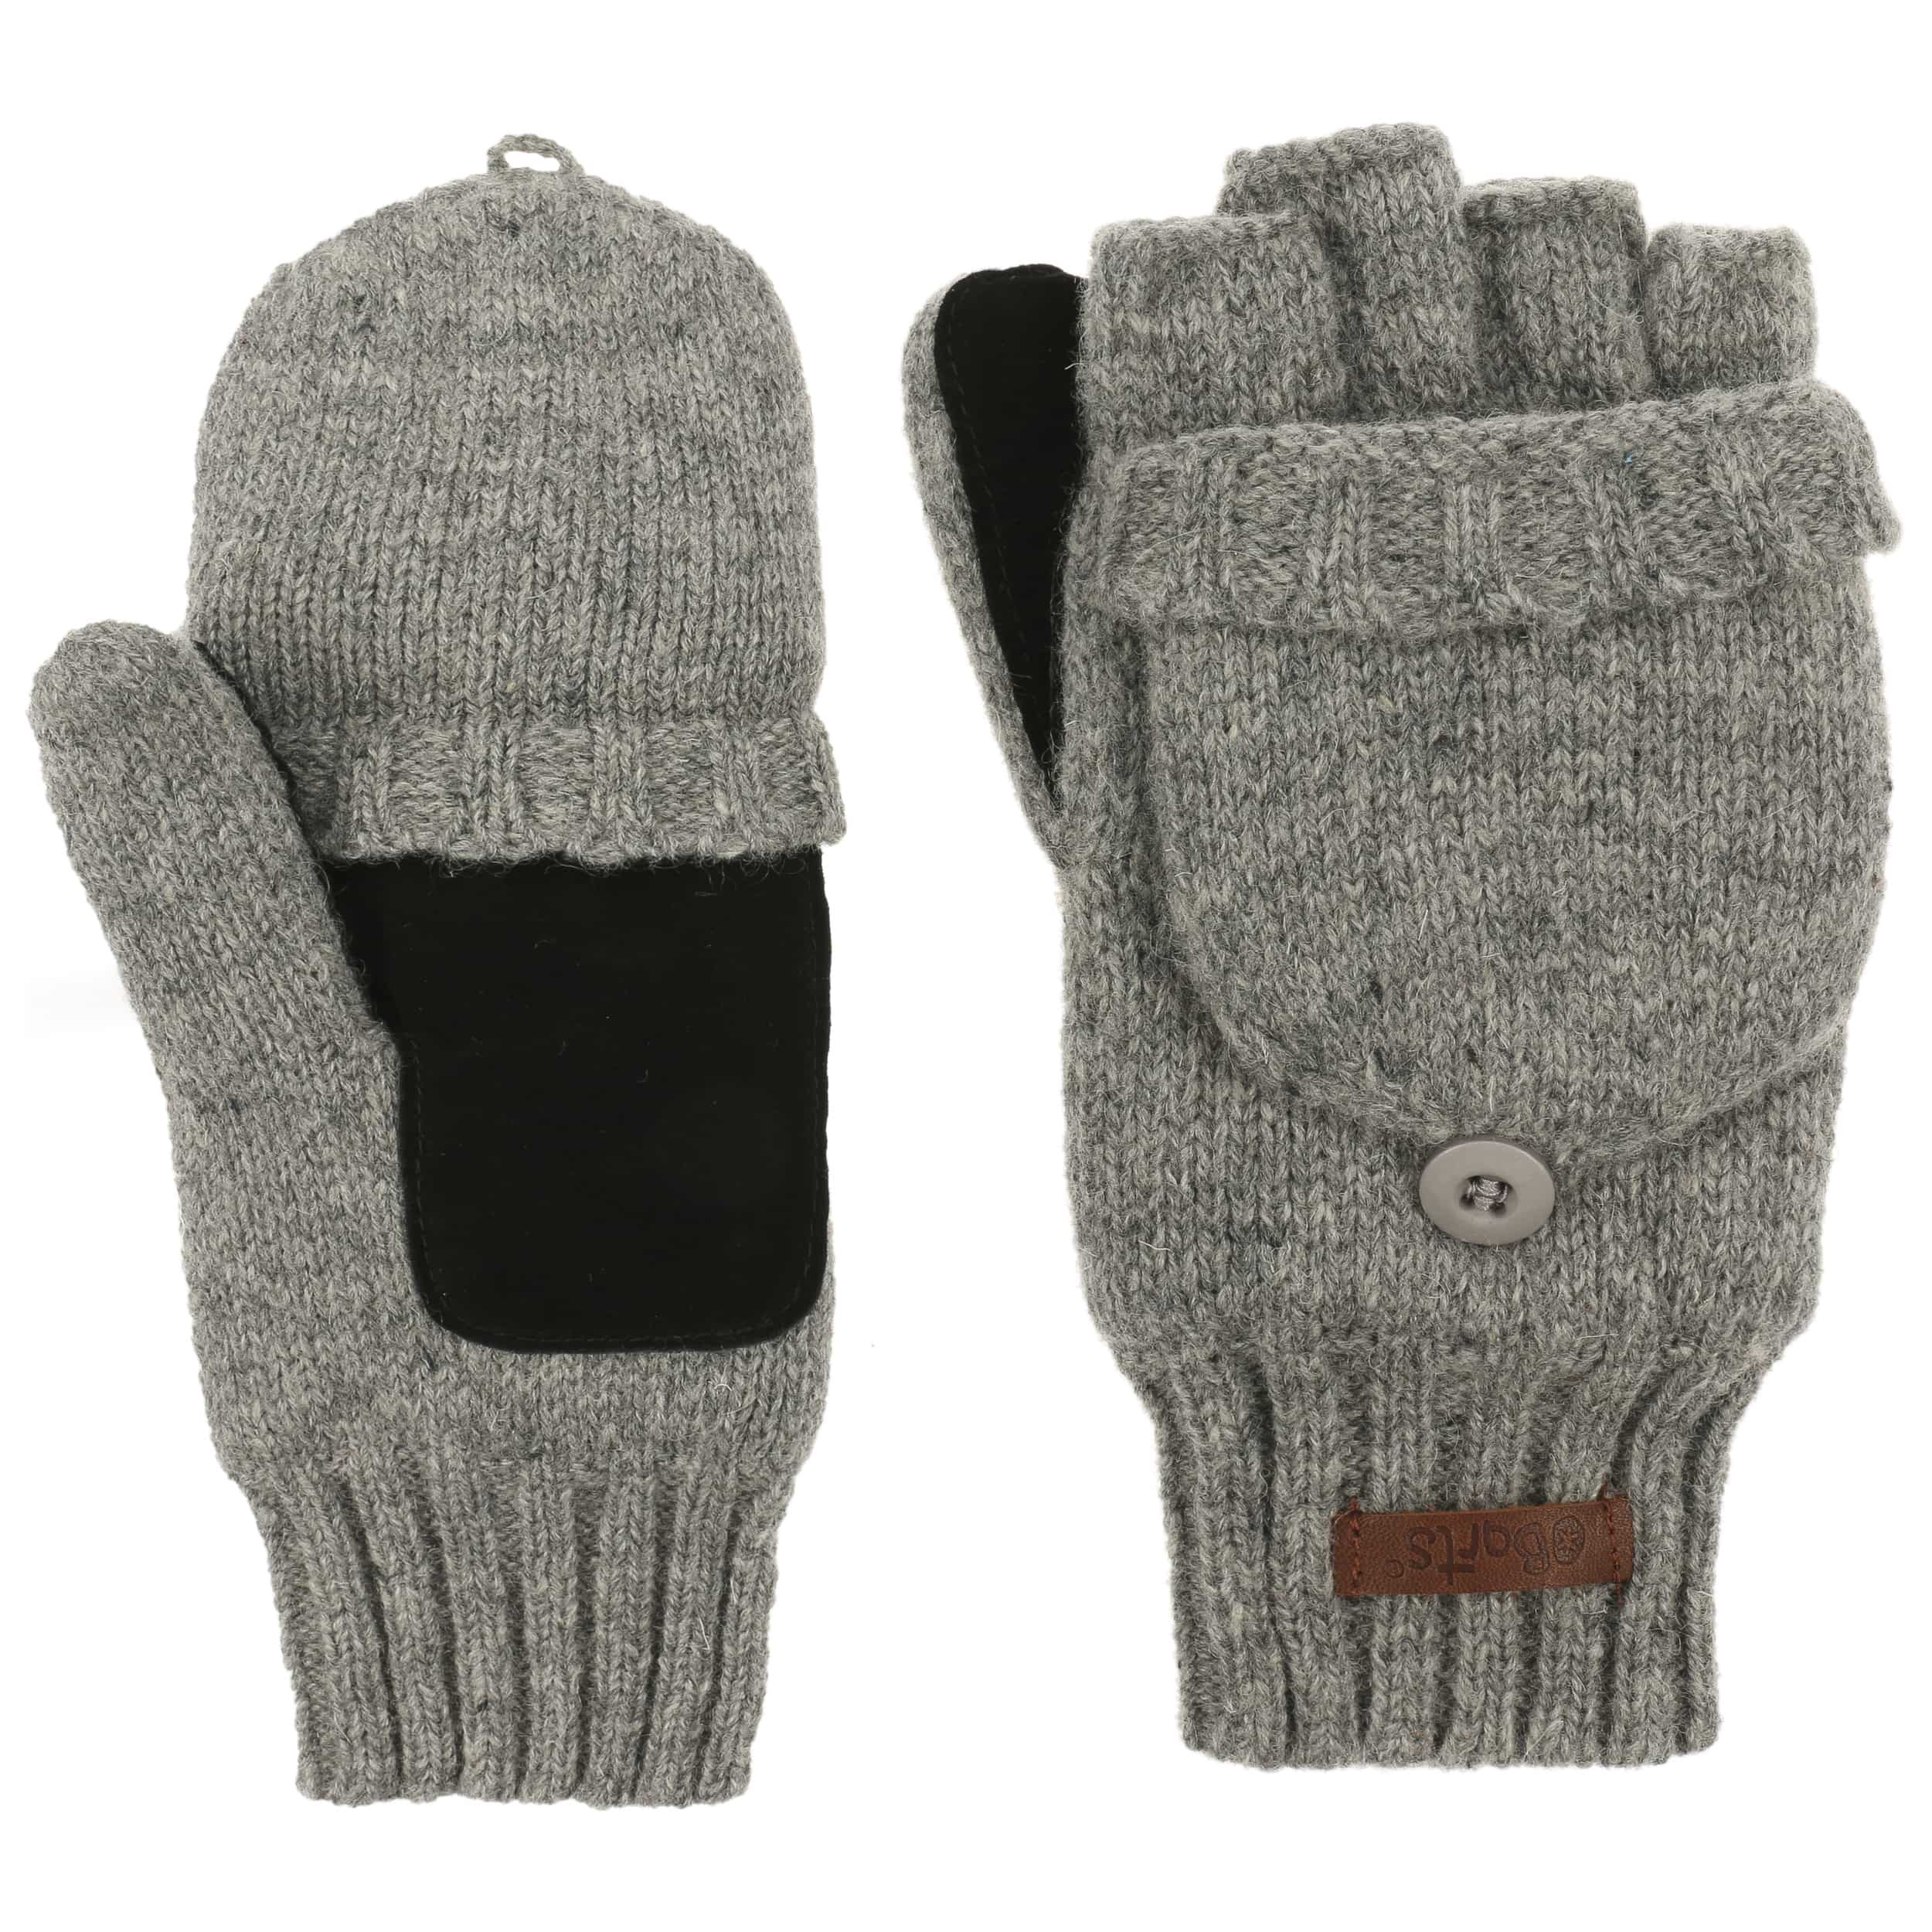 You searched for: boys fingerless gloves! Etsy is the home to thousands of handmade, vintage, and one-of-a-kind products and gifts related to your search. No matter what you're looking for or where you are in the world, our global marketplace of sellers can help you .